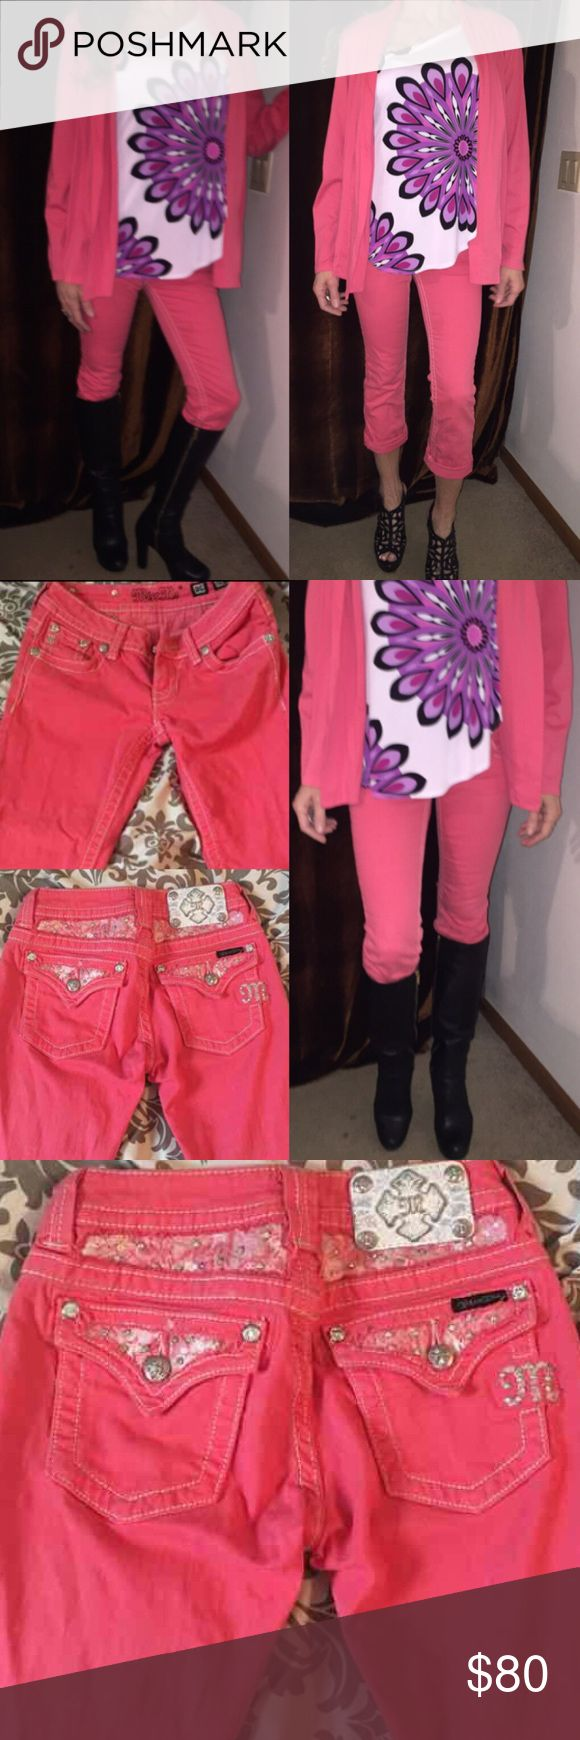 Miss me coral Capri jeans These are in perfect condition like new size 25 coral color cuffed Capri jeans Miss Me Jeans Ankle & Cropped